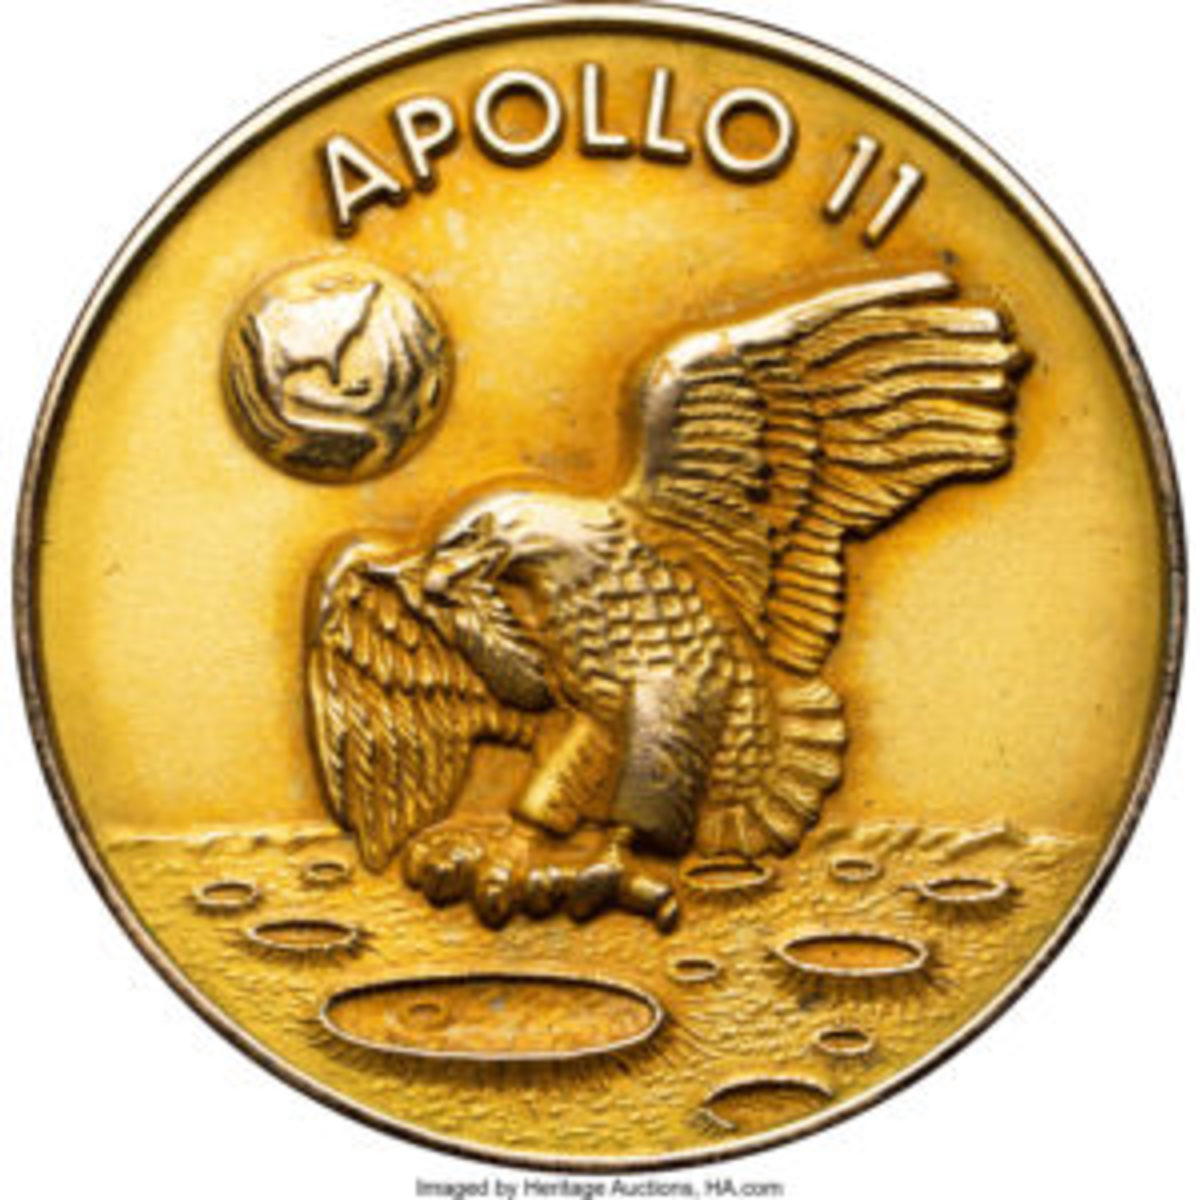 After an opening bid of $250,000, Neil Armstrong's one and only Apollo 11 Lunar Module Flown MS67 NGC 14K Gold Robbins Medal ended with a winning bid of $2,055,000. This CAG certified 28mm medal was one of only three specially minted gold medals flown aboard Apollo 11, one for each member of the crew: Neil Armstrong, Michael Collins and Buzz Aldrin. The obverse, above, depicts Collins' early and original concept for the mission insignia with the eagle carrying an olive branch in its mouth. The reverse, below, has the dates of the mission, surnames of the crew and the gold hallmark. From the Neil Armstrong Family Collection. Courtesy of Heritage Auctions